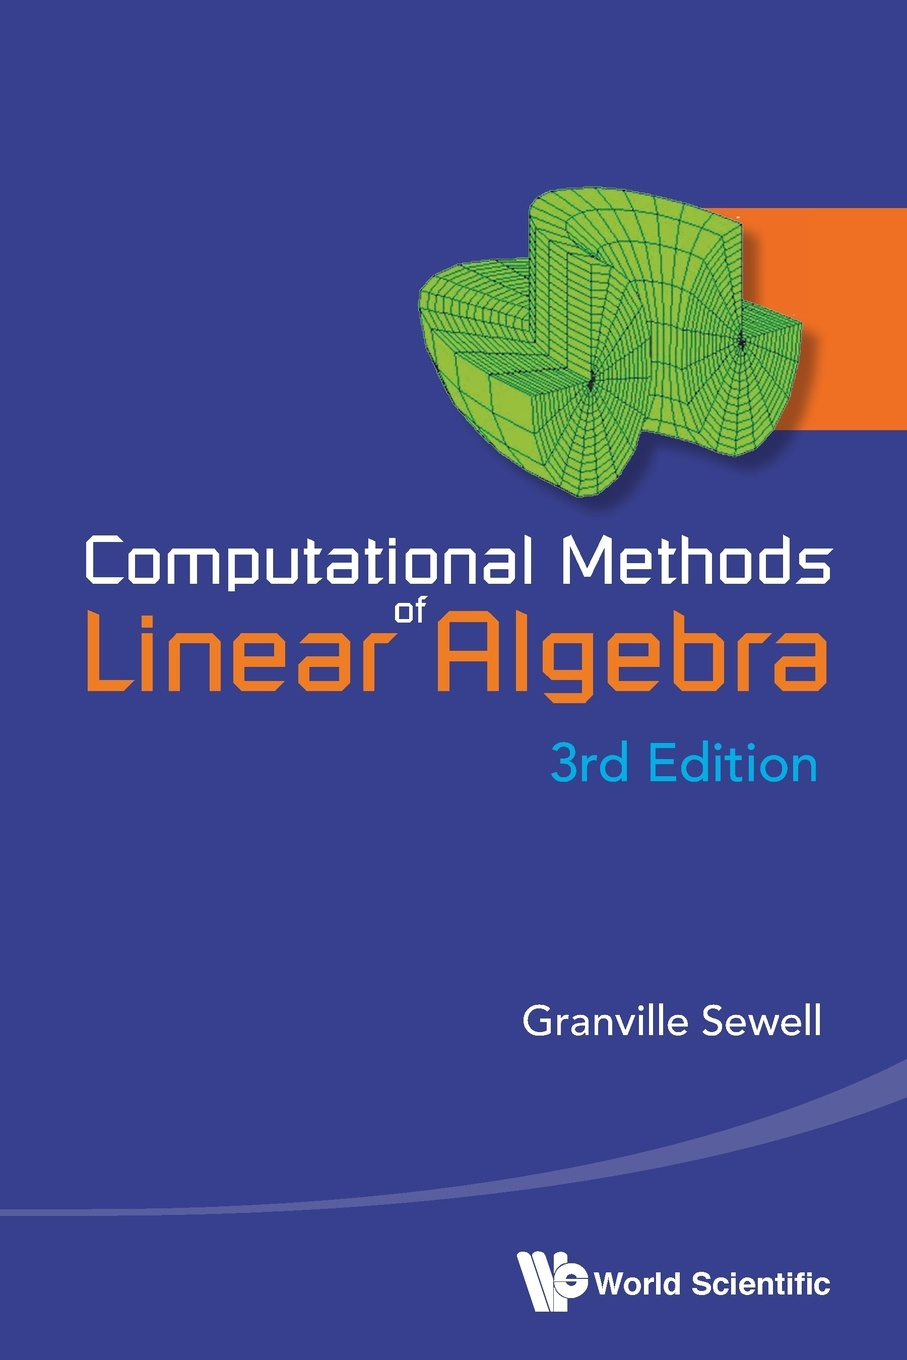 Granville Sewell Computational Methods of Linear Algebra the penguin problems book notebook